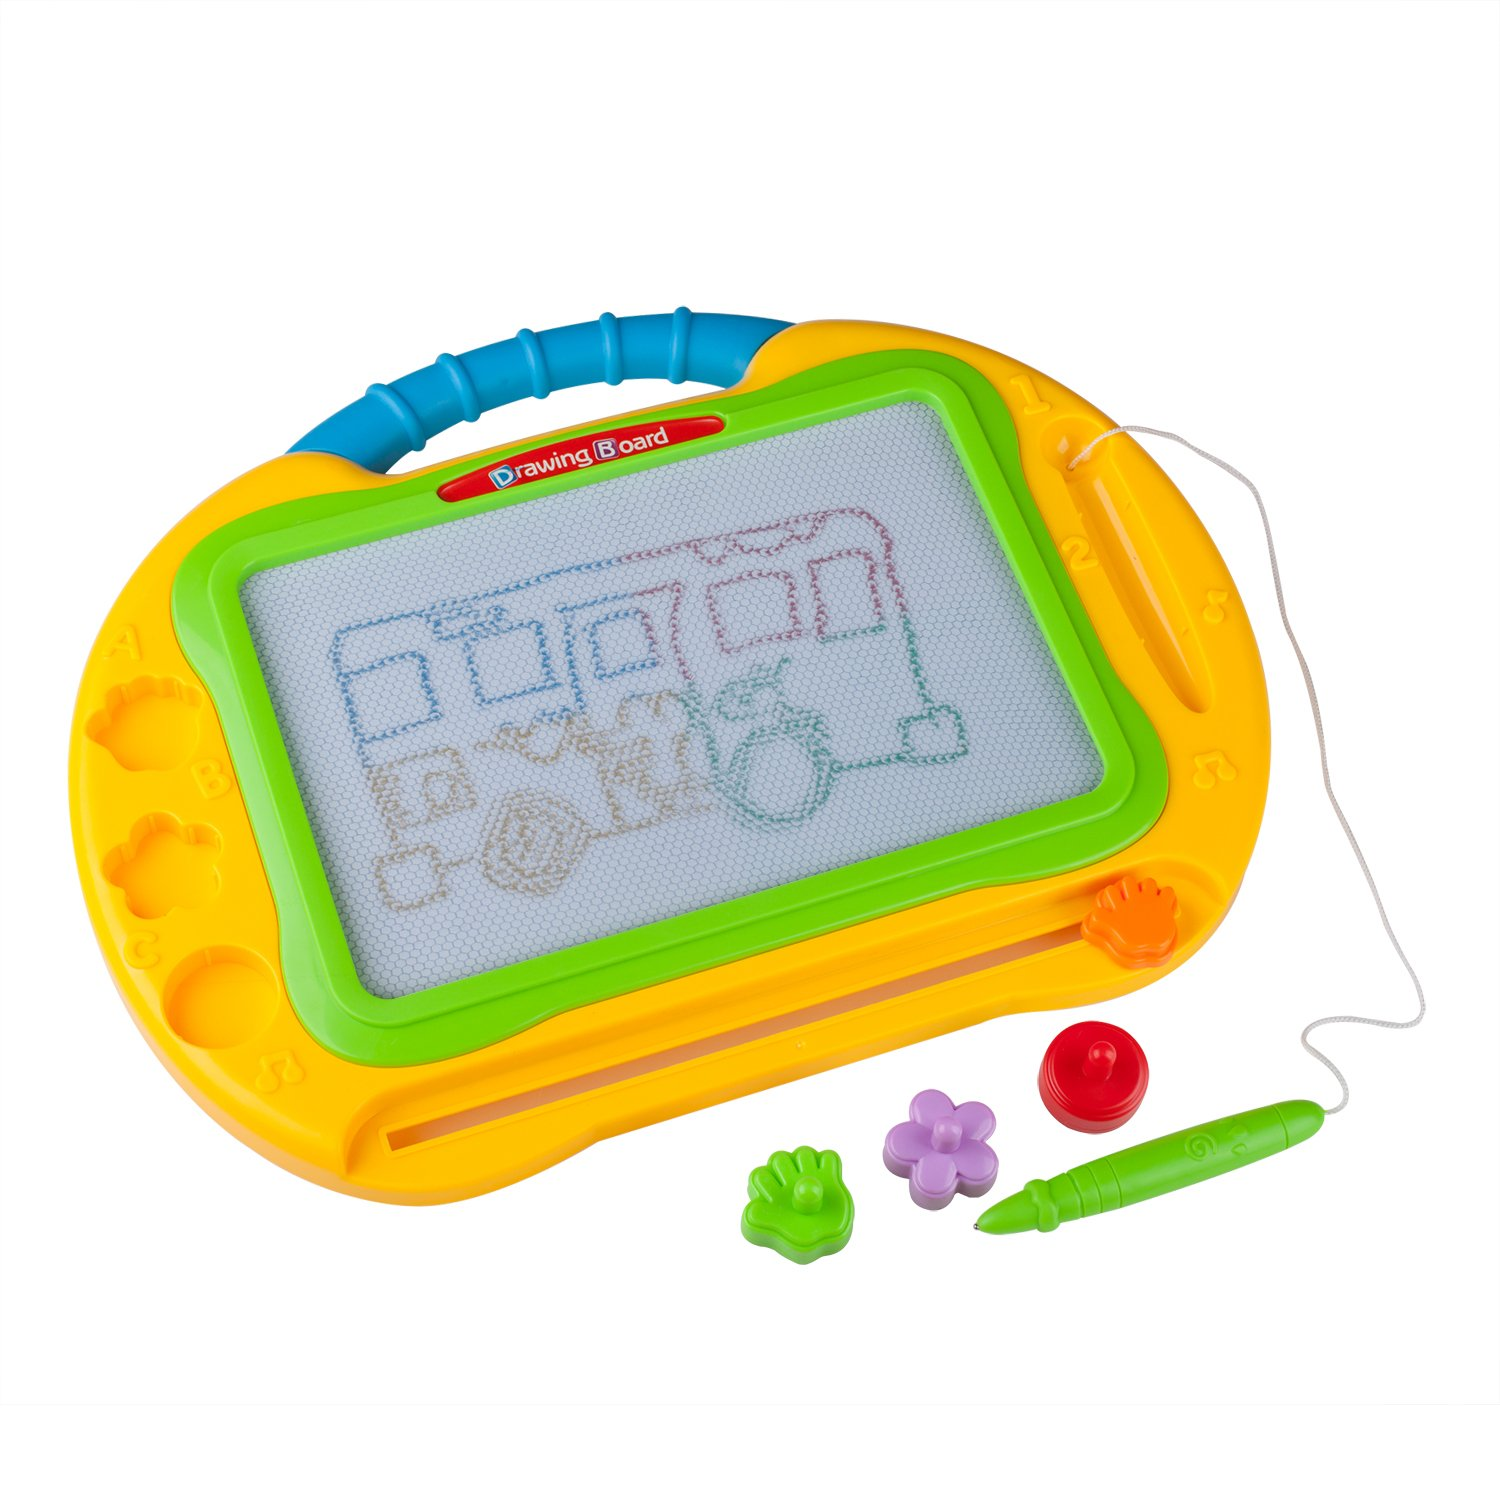 ikidsislands IKS99Y [Travel Size] Color Magnetic Drawing Board for Kids & Toddlers - Non Toxic Large Magna Sketch Doodle Educational Toy for Boys, with 1 Pen & 2 Stamps (Yellow) by ikidsislands (Image #3)